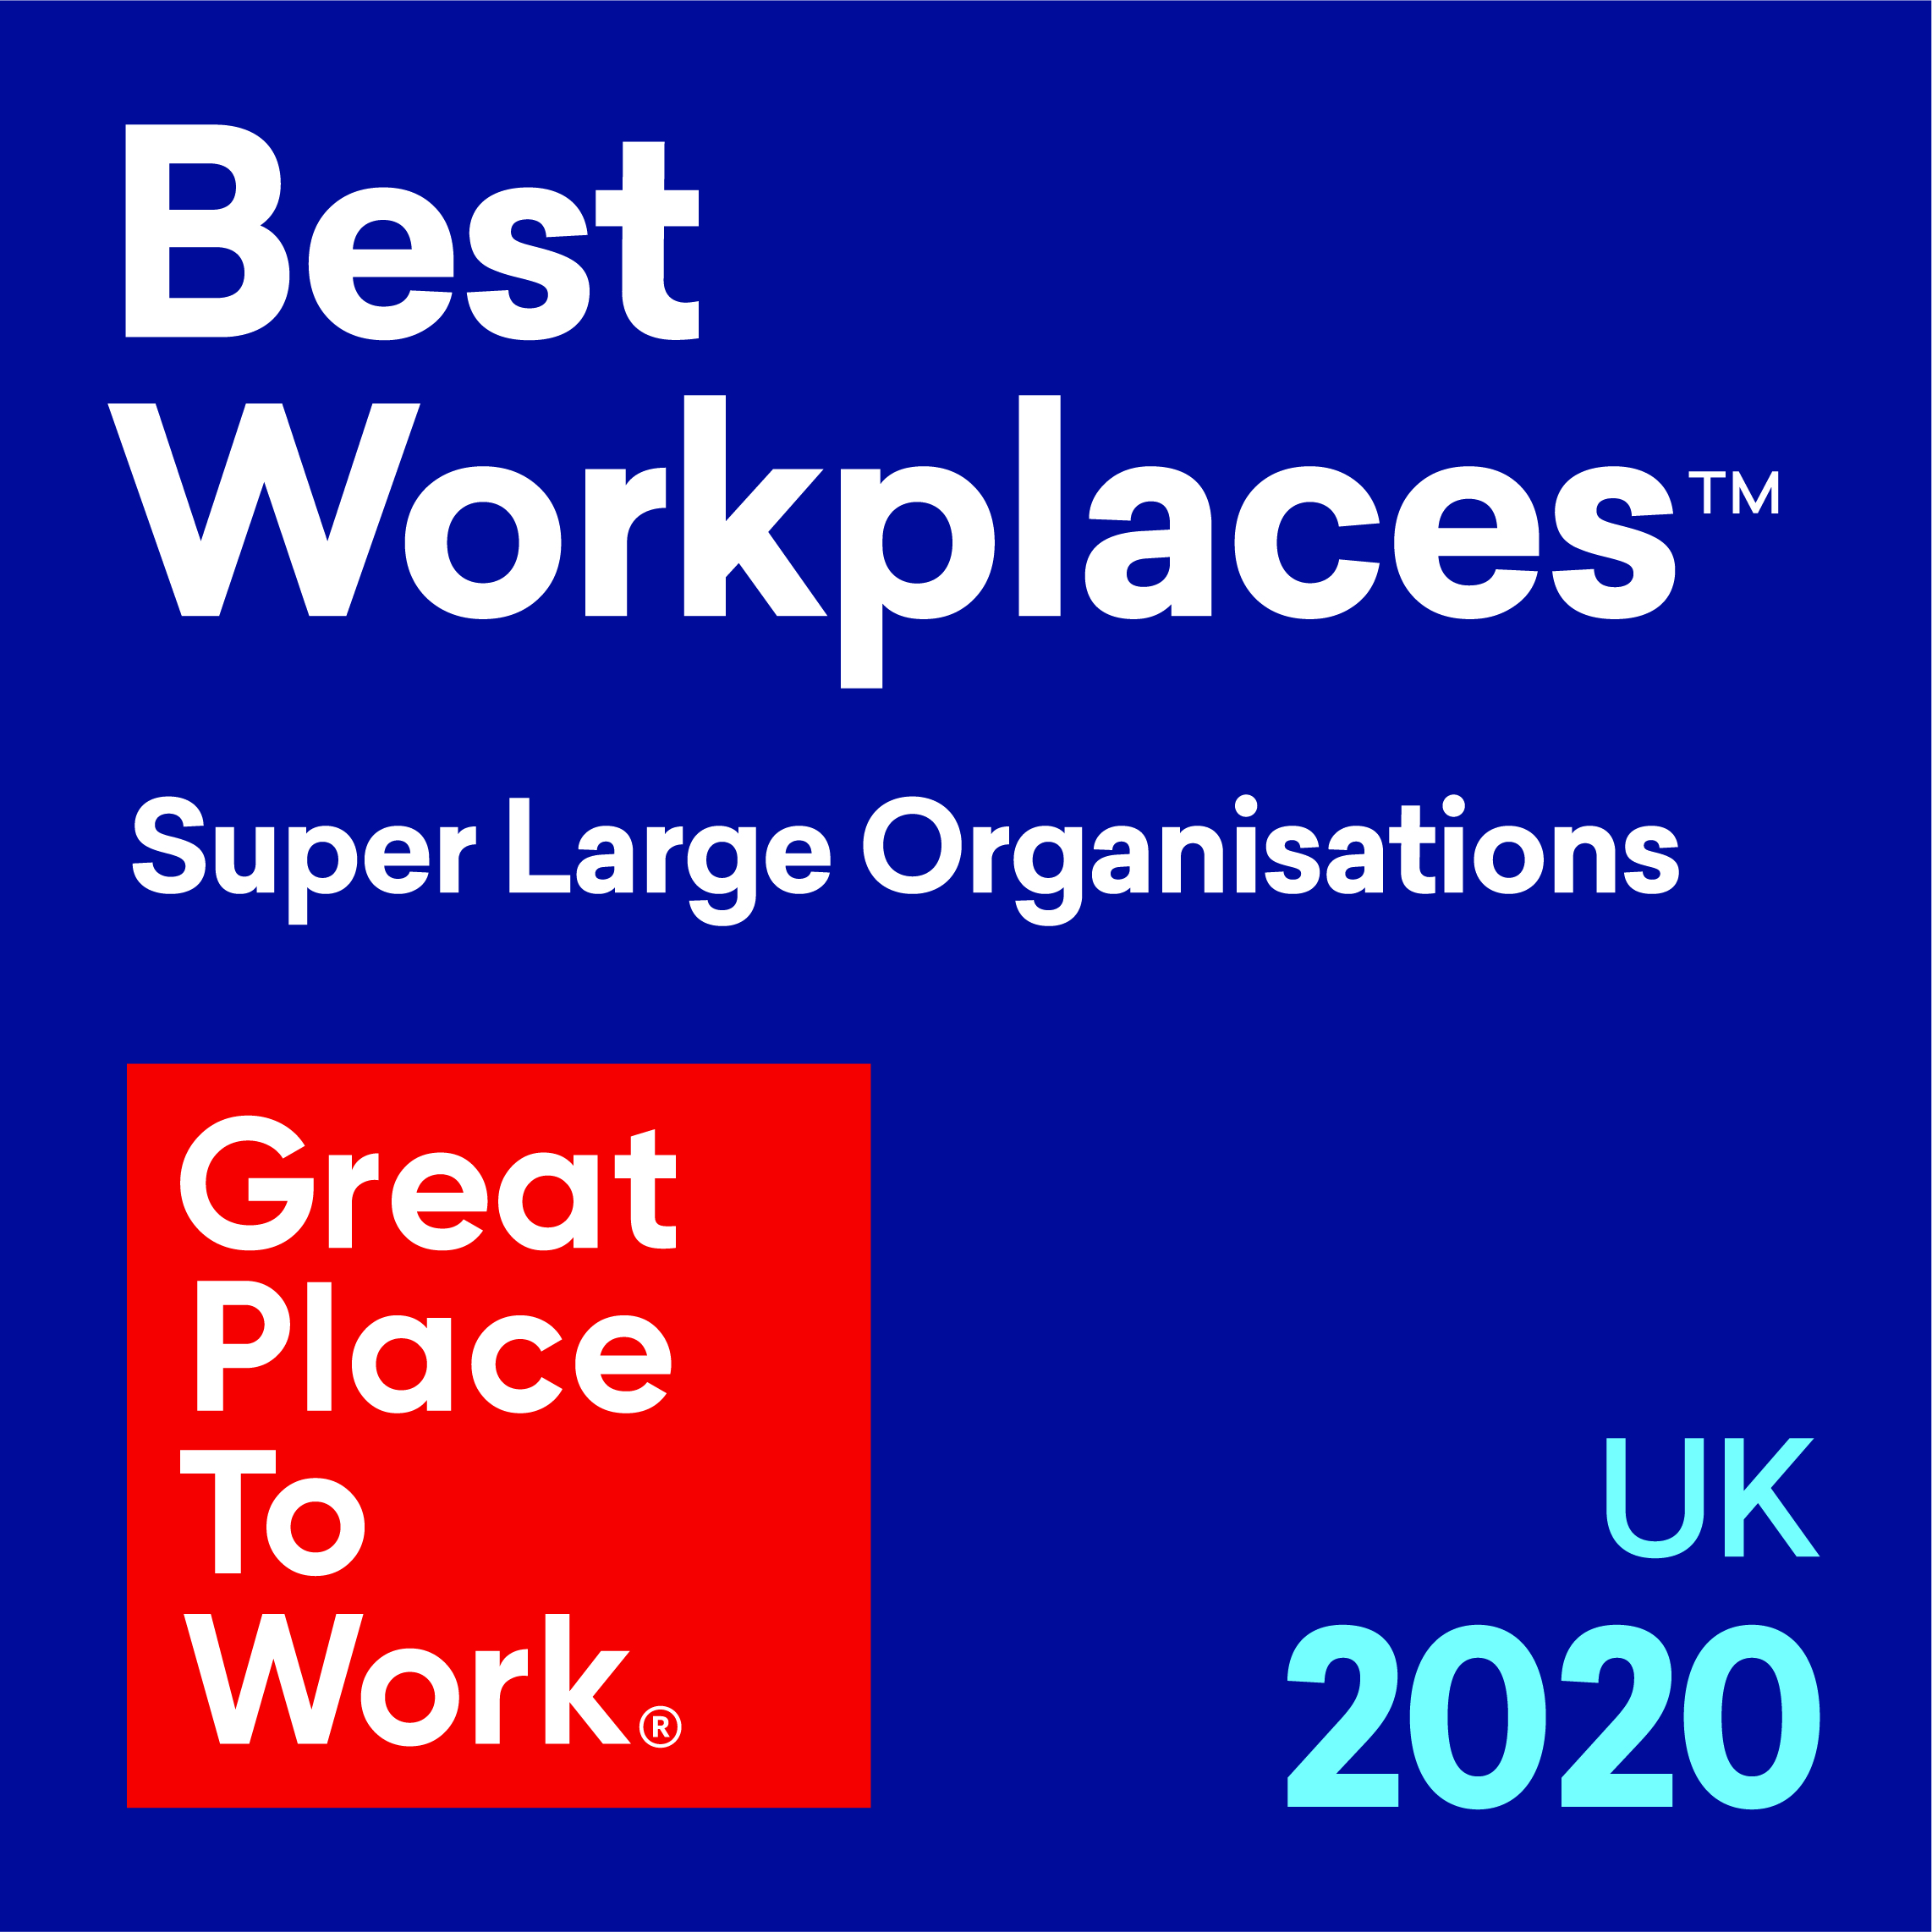 Best Workplaces Supler Large Organisations 2020